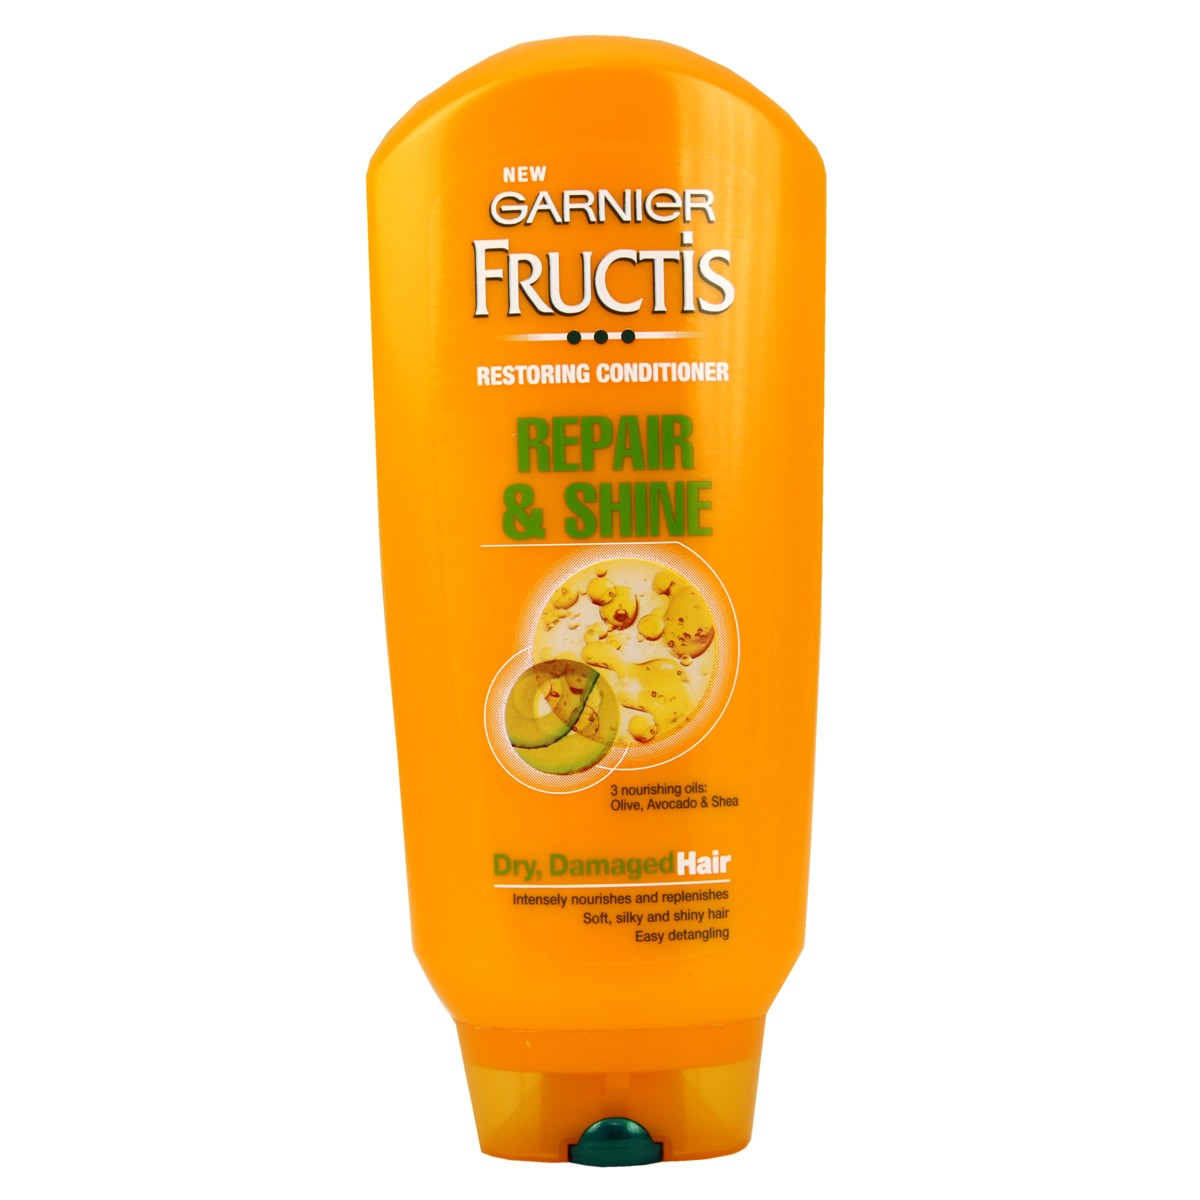 Garnier Fructis Repair & Shine Conditioner